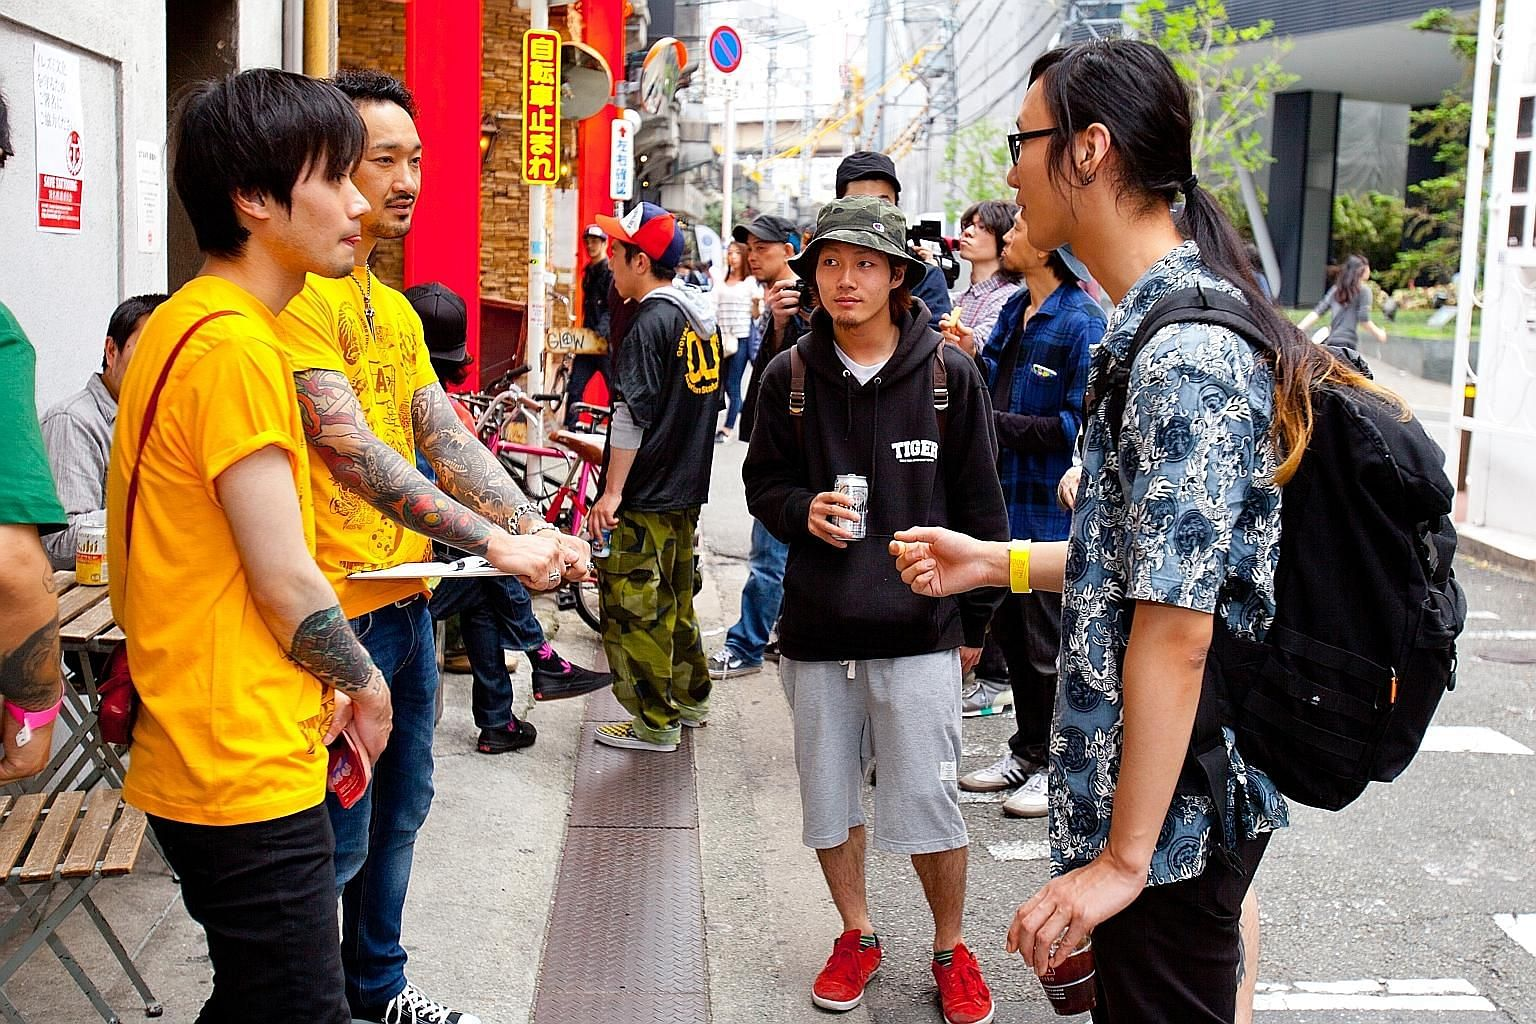 Mr Masuda (far left, foreground), who started the Save Tattooing in Japan campaign, speaking to people during an event in Osaka to raise awareness about the craft, and (left) tattooing a client. The tattoo artist's business has been suspended for ove